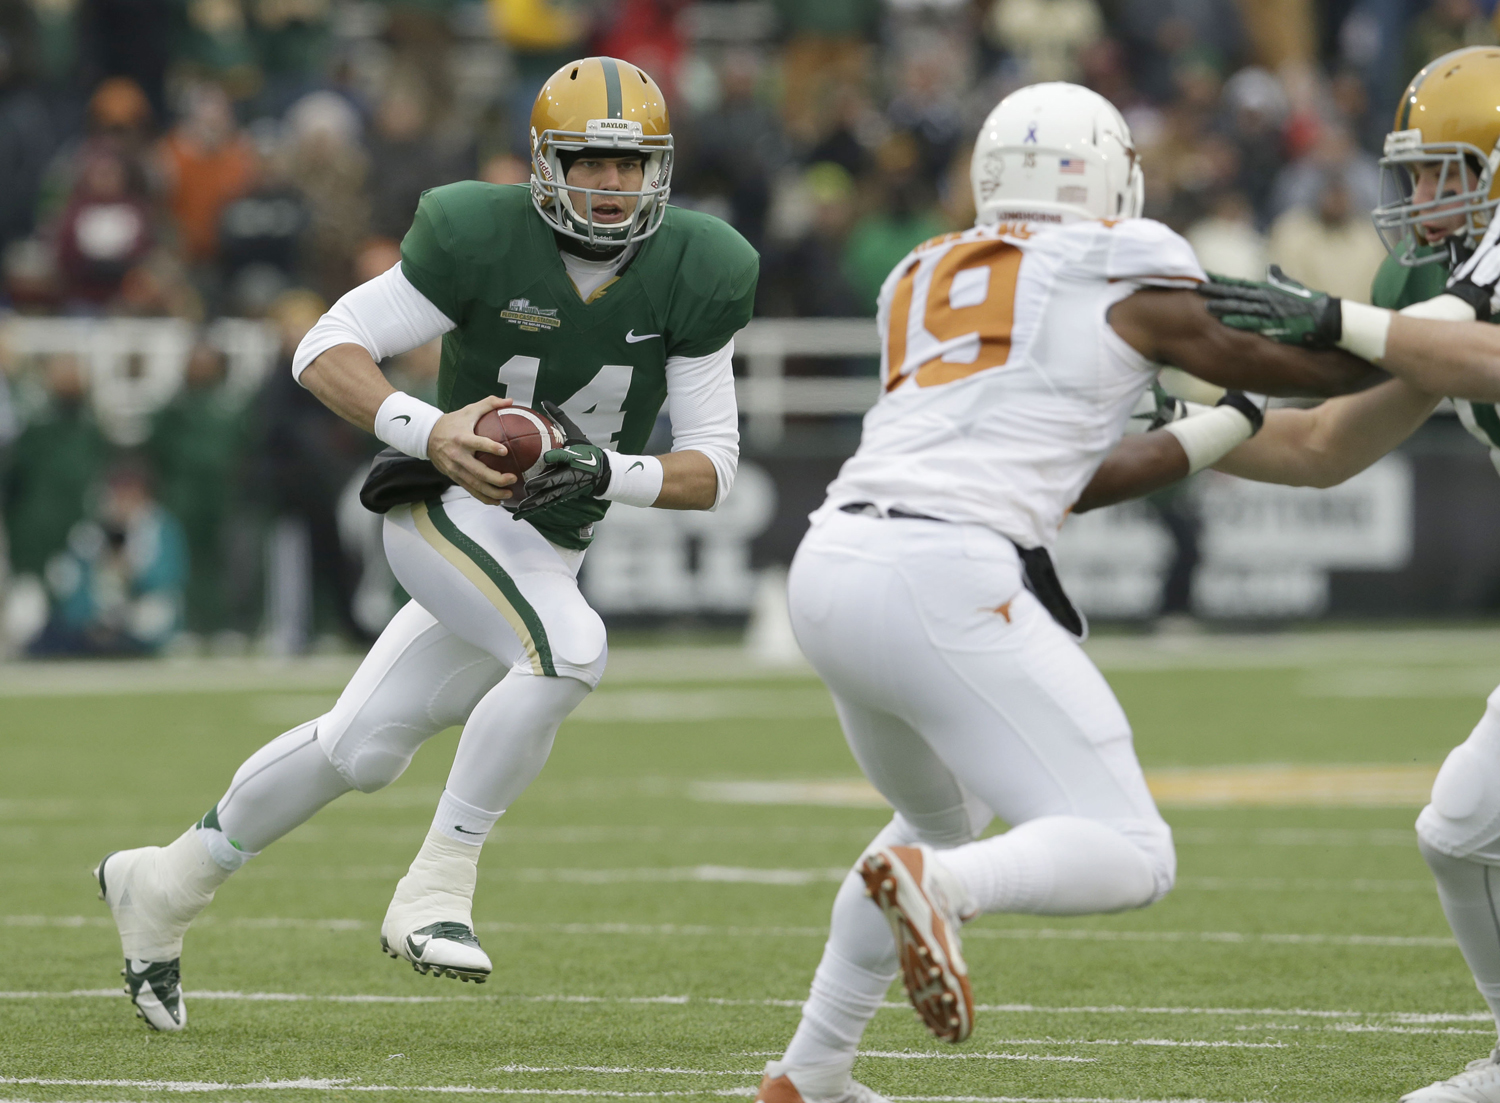 Baylor quarterback Bryce Petty (14) looks for space to run as tight end Jordan Najvar (18) blocks Texas linebacker Peter Jinkens (19) during the first half of an NCAA college football game in Waco, Texas. (LM Otero/Associated Press)